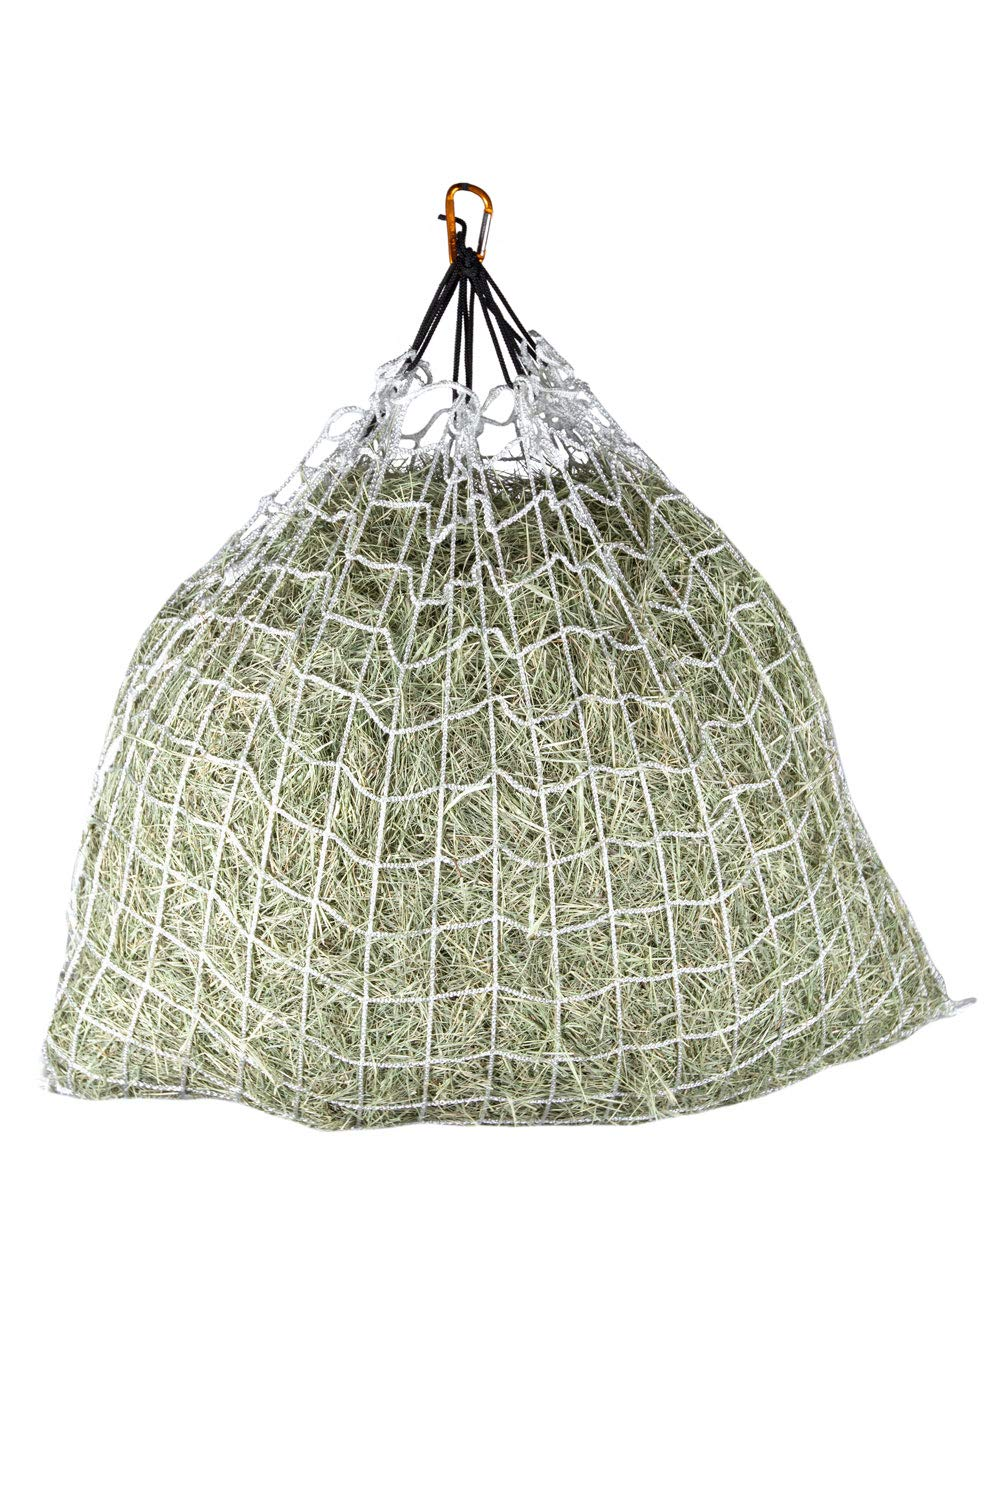 Freedom Feeder Mesh Net Full Day Slow Horse Feeder - Designed to Hold 30 lbs/4 Flakes of Hay and Feed Horse All Day - Reduces Horse Feeding Anxiety and Behavioral Issues